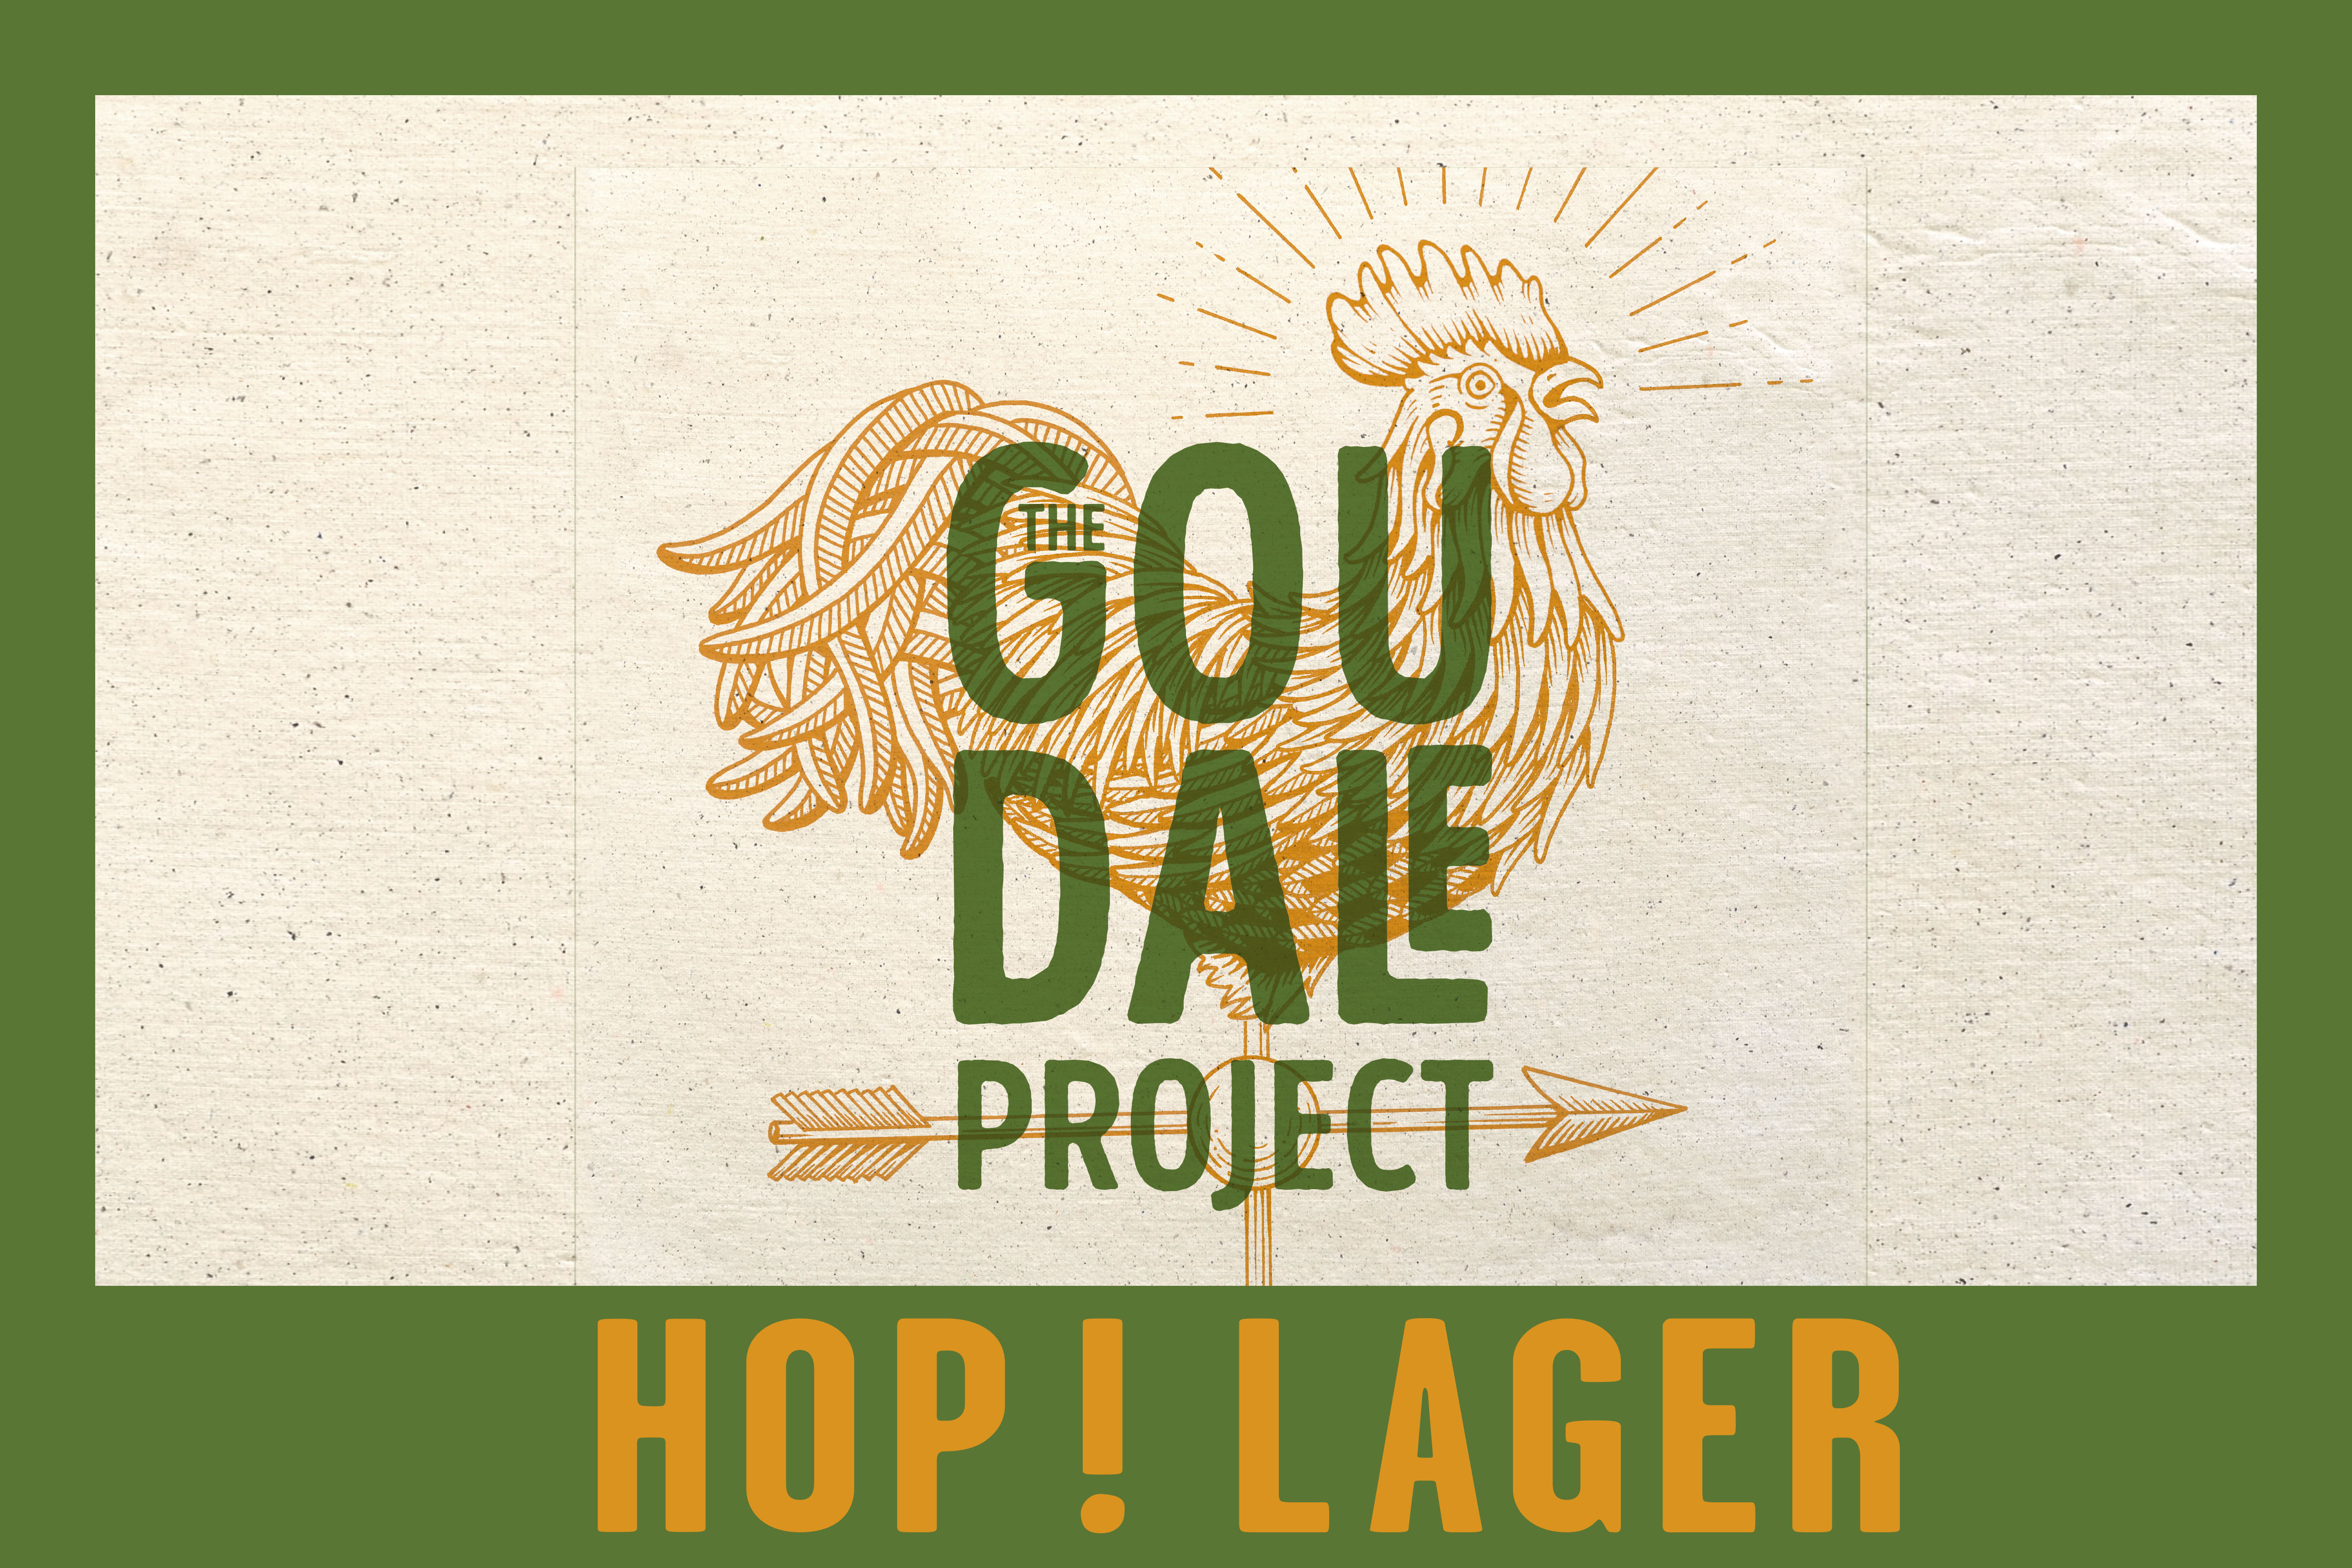 BRASSERIE GOUDALE-project Lager vignette